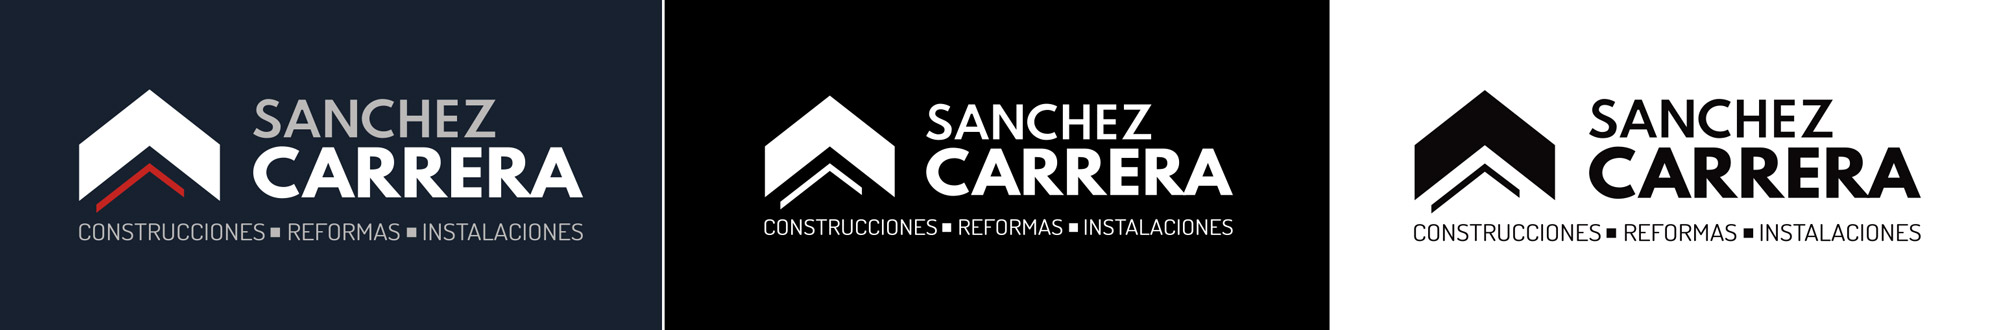 Sanchez Carrera logotipo versiones